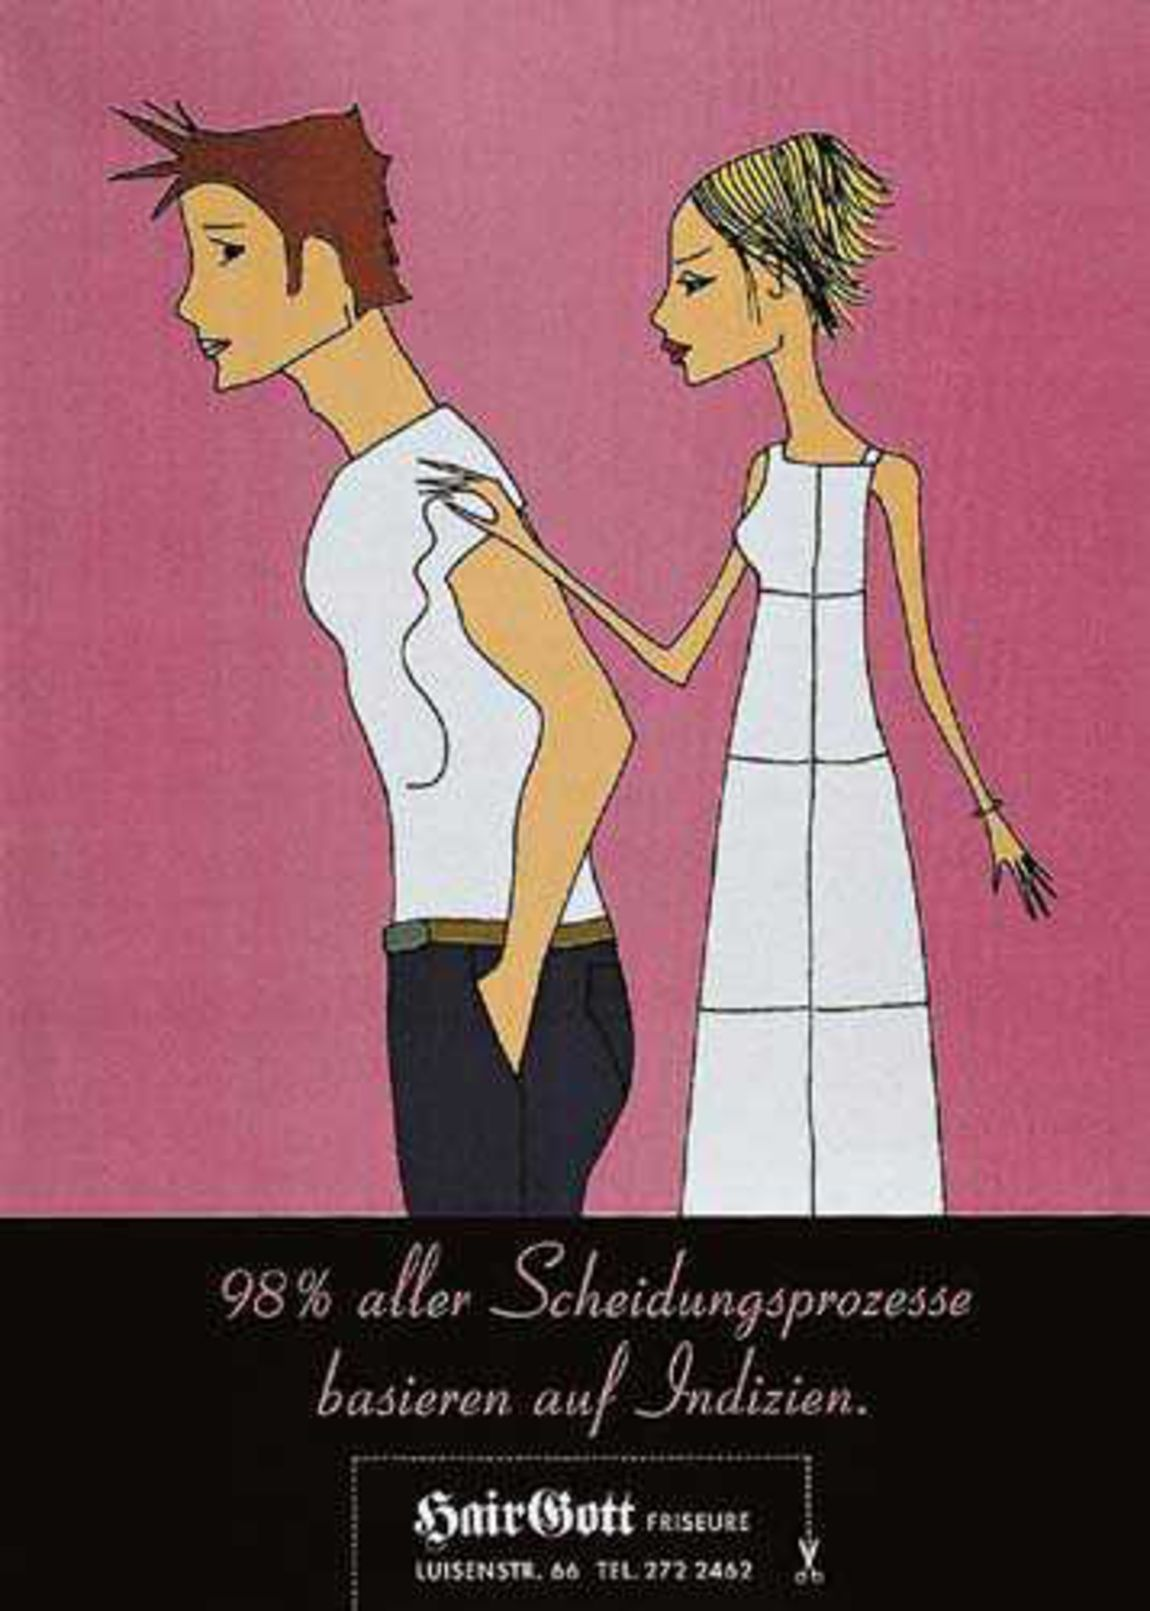 """Read more: https://www.luerzersarchive.com/en/magazine/print-detail/9653.html 98 percent of all divorce cases are based on circumstantial evidence. Campaign for the Munich-based """"Hairgott"""" chain of hairdressers was done by the creatives direct. Tags: Henrietta Lienke,Hairgott / In-House, Muenchen,Petra Wittmann,Jasmin Khezri, München,Hair Gott Friseure"""